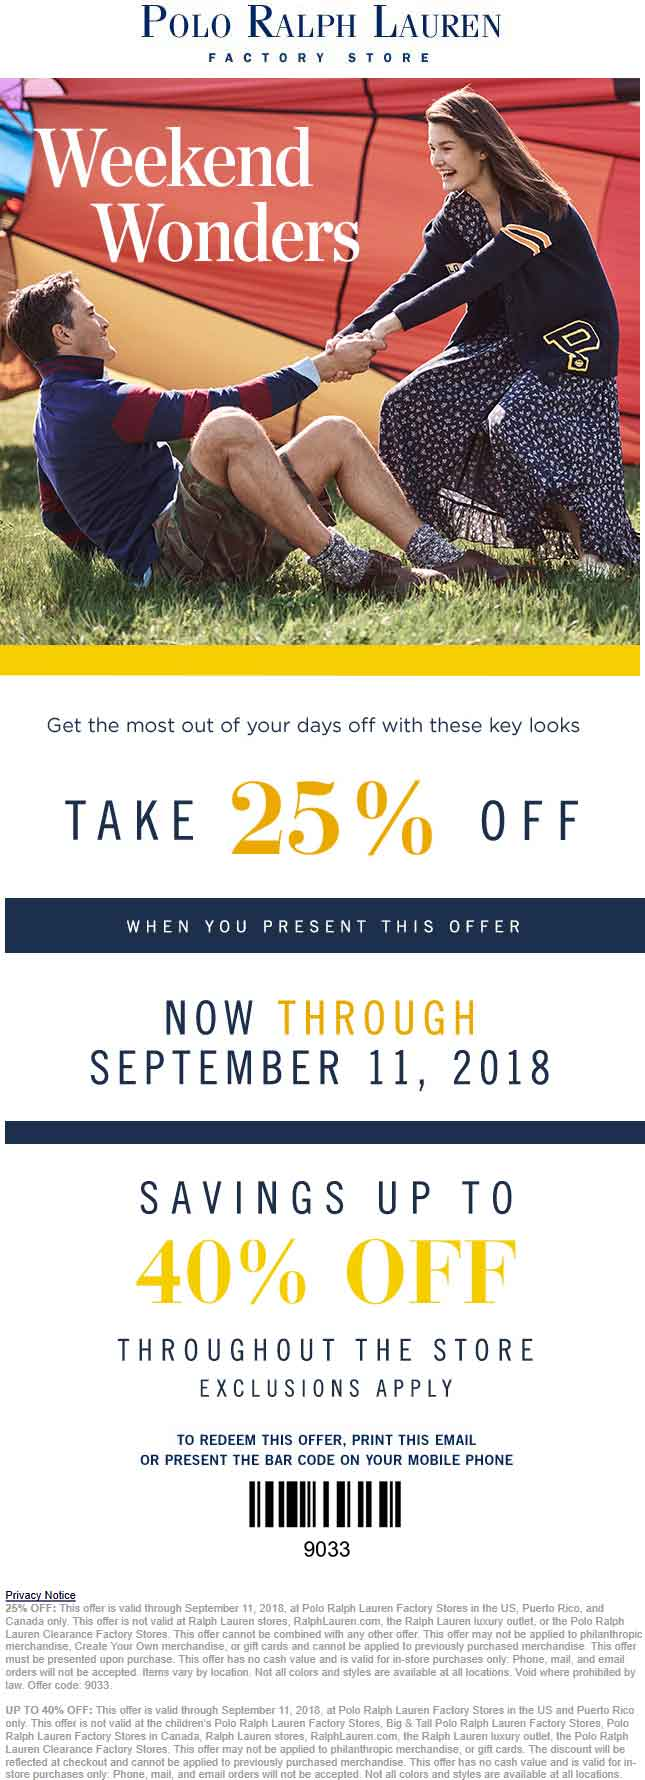 Polo Ralph Lauren Factory Coupon July 2019 25% off & more at Polo Ralph Lauren Factory